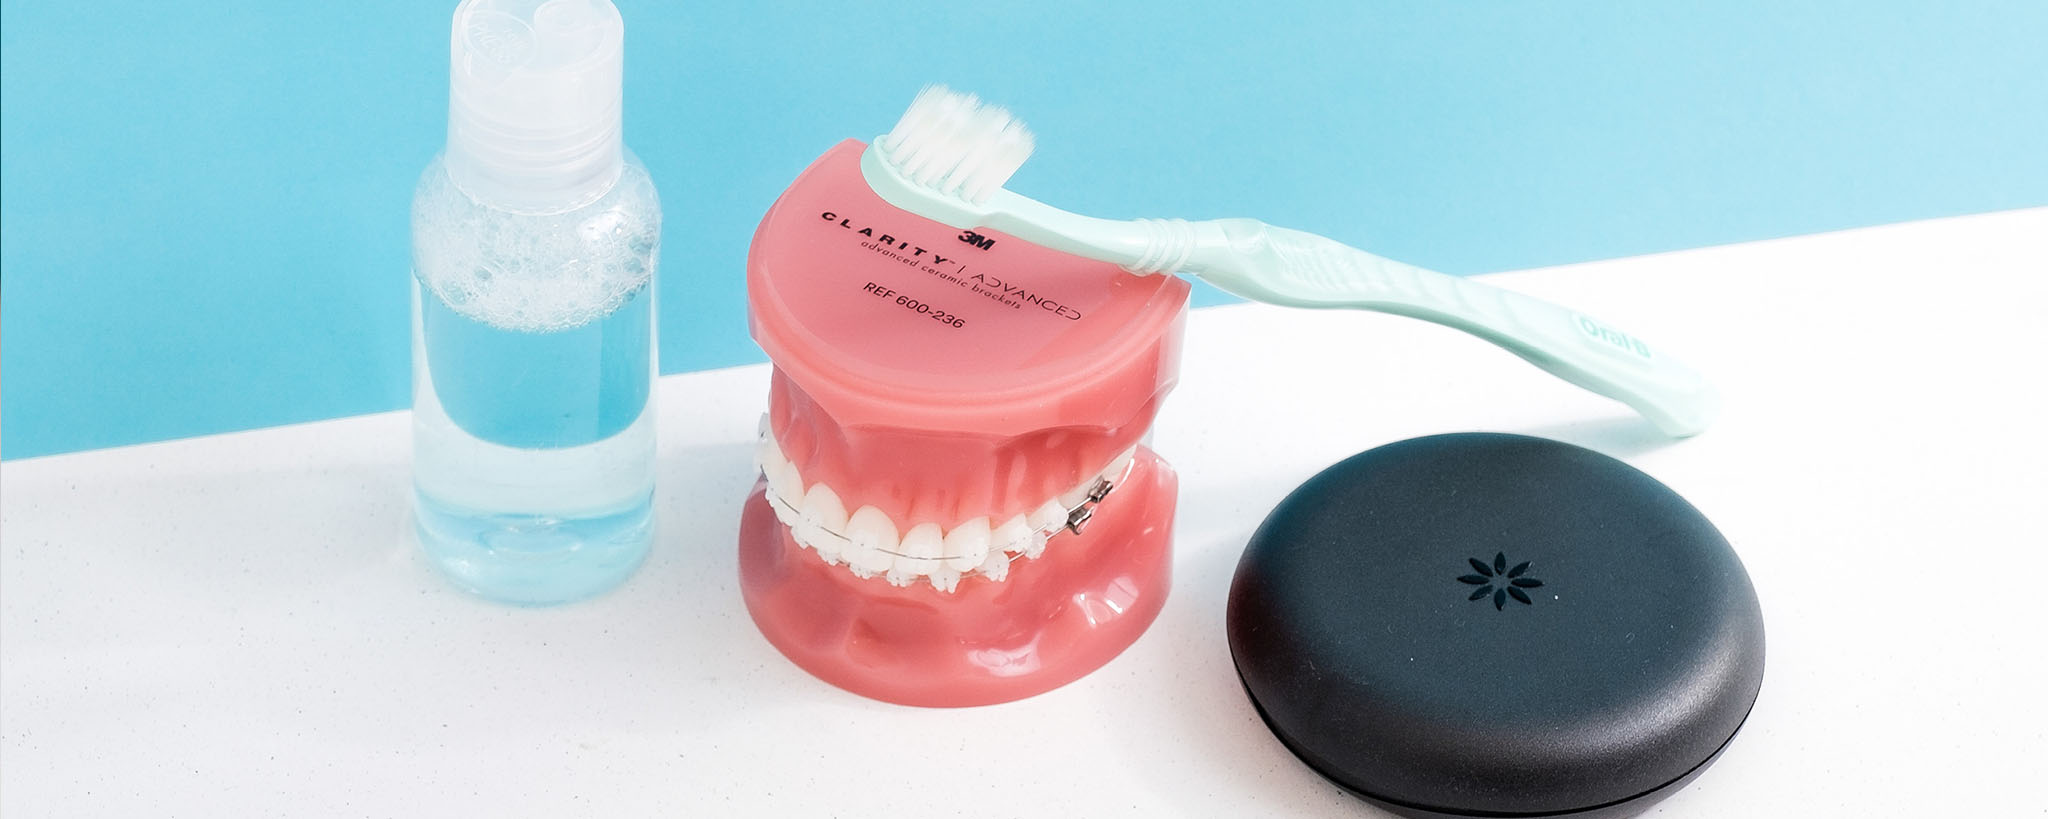 6 Tips for during and after orthodontic treatment